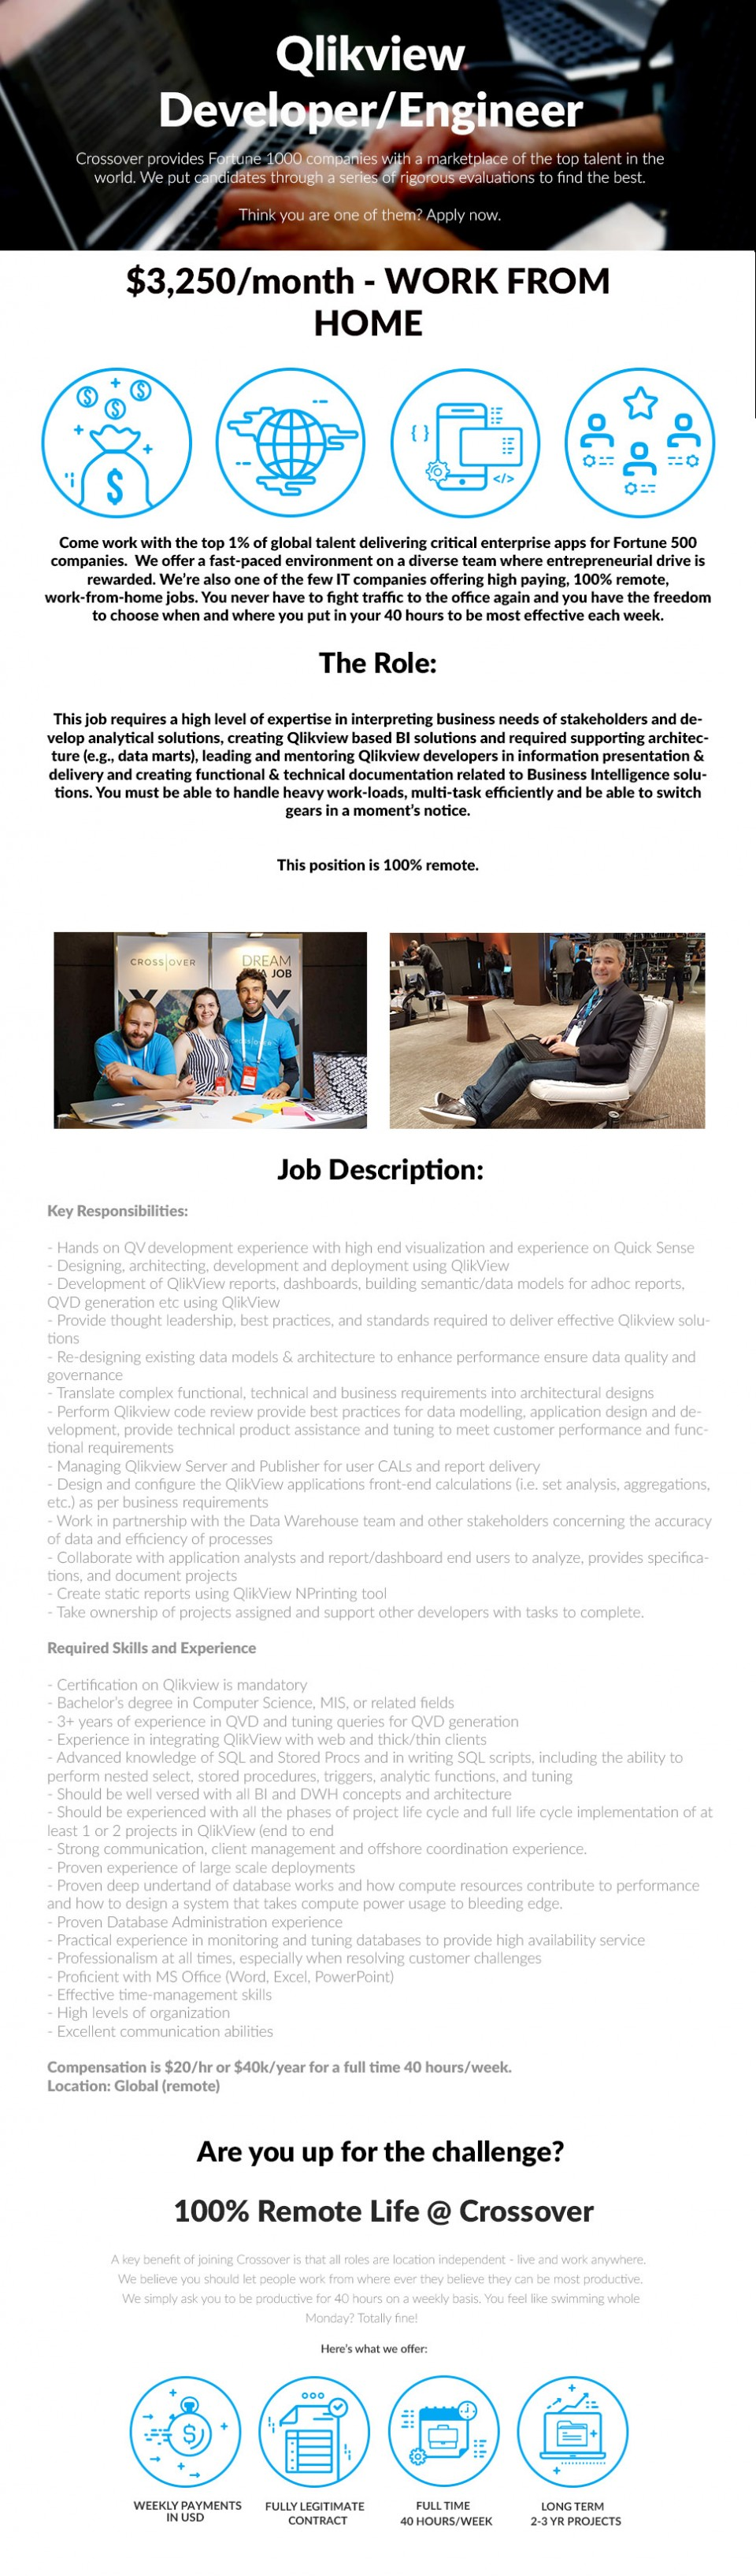 Qlikview Developer/Engineer - $3250/month - WORK FROM HOME